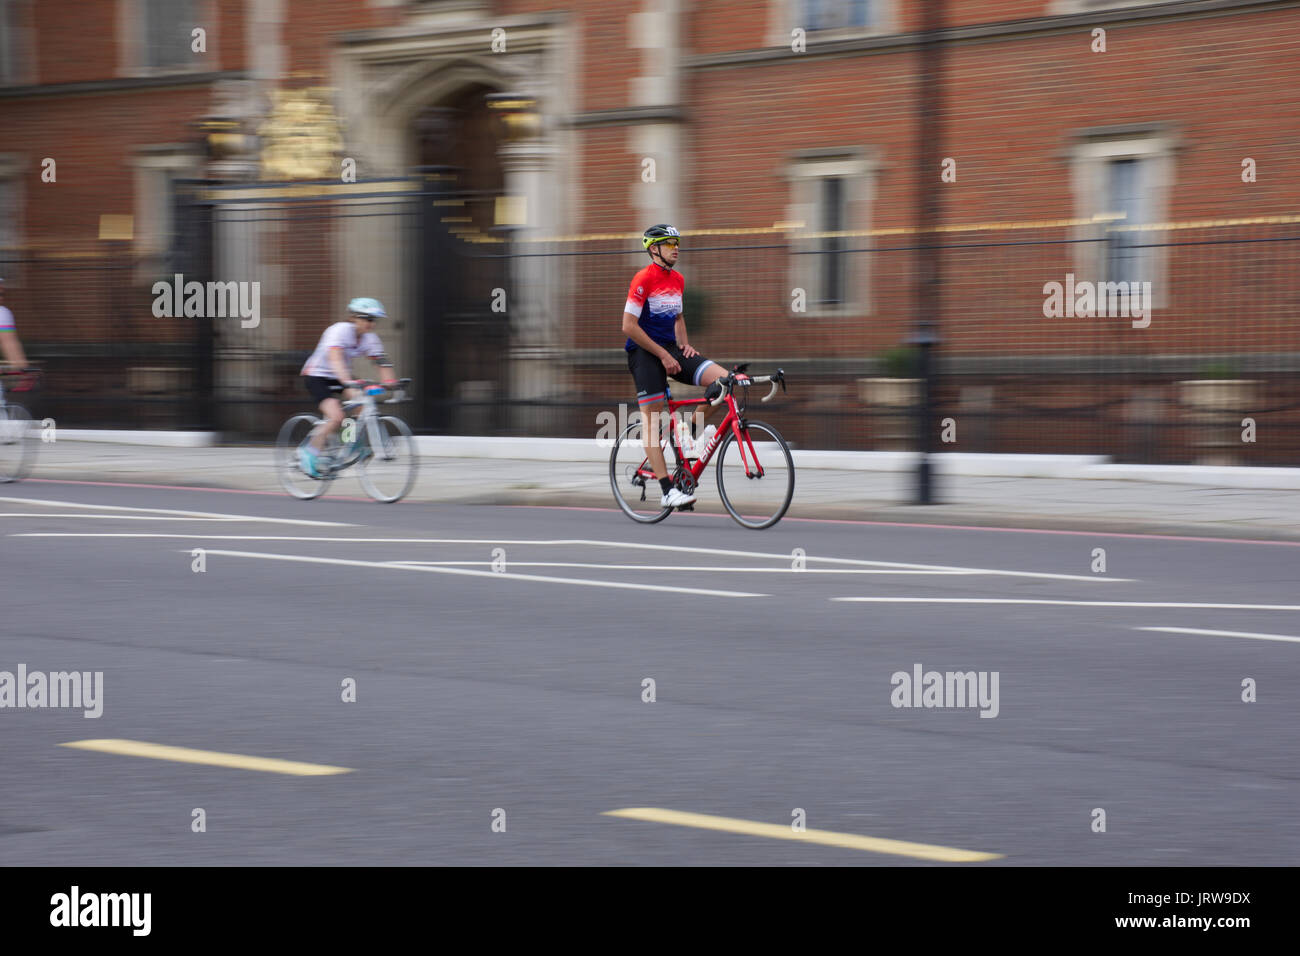 London cycle race 2017 prudentielle. Banque D'Images